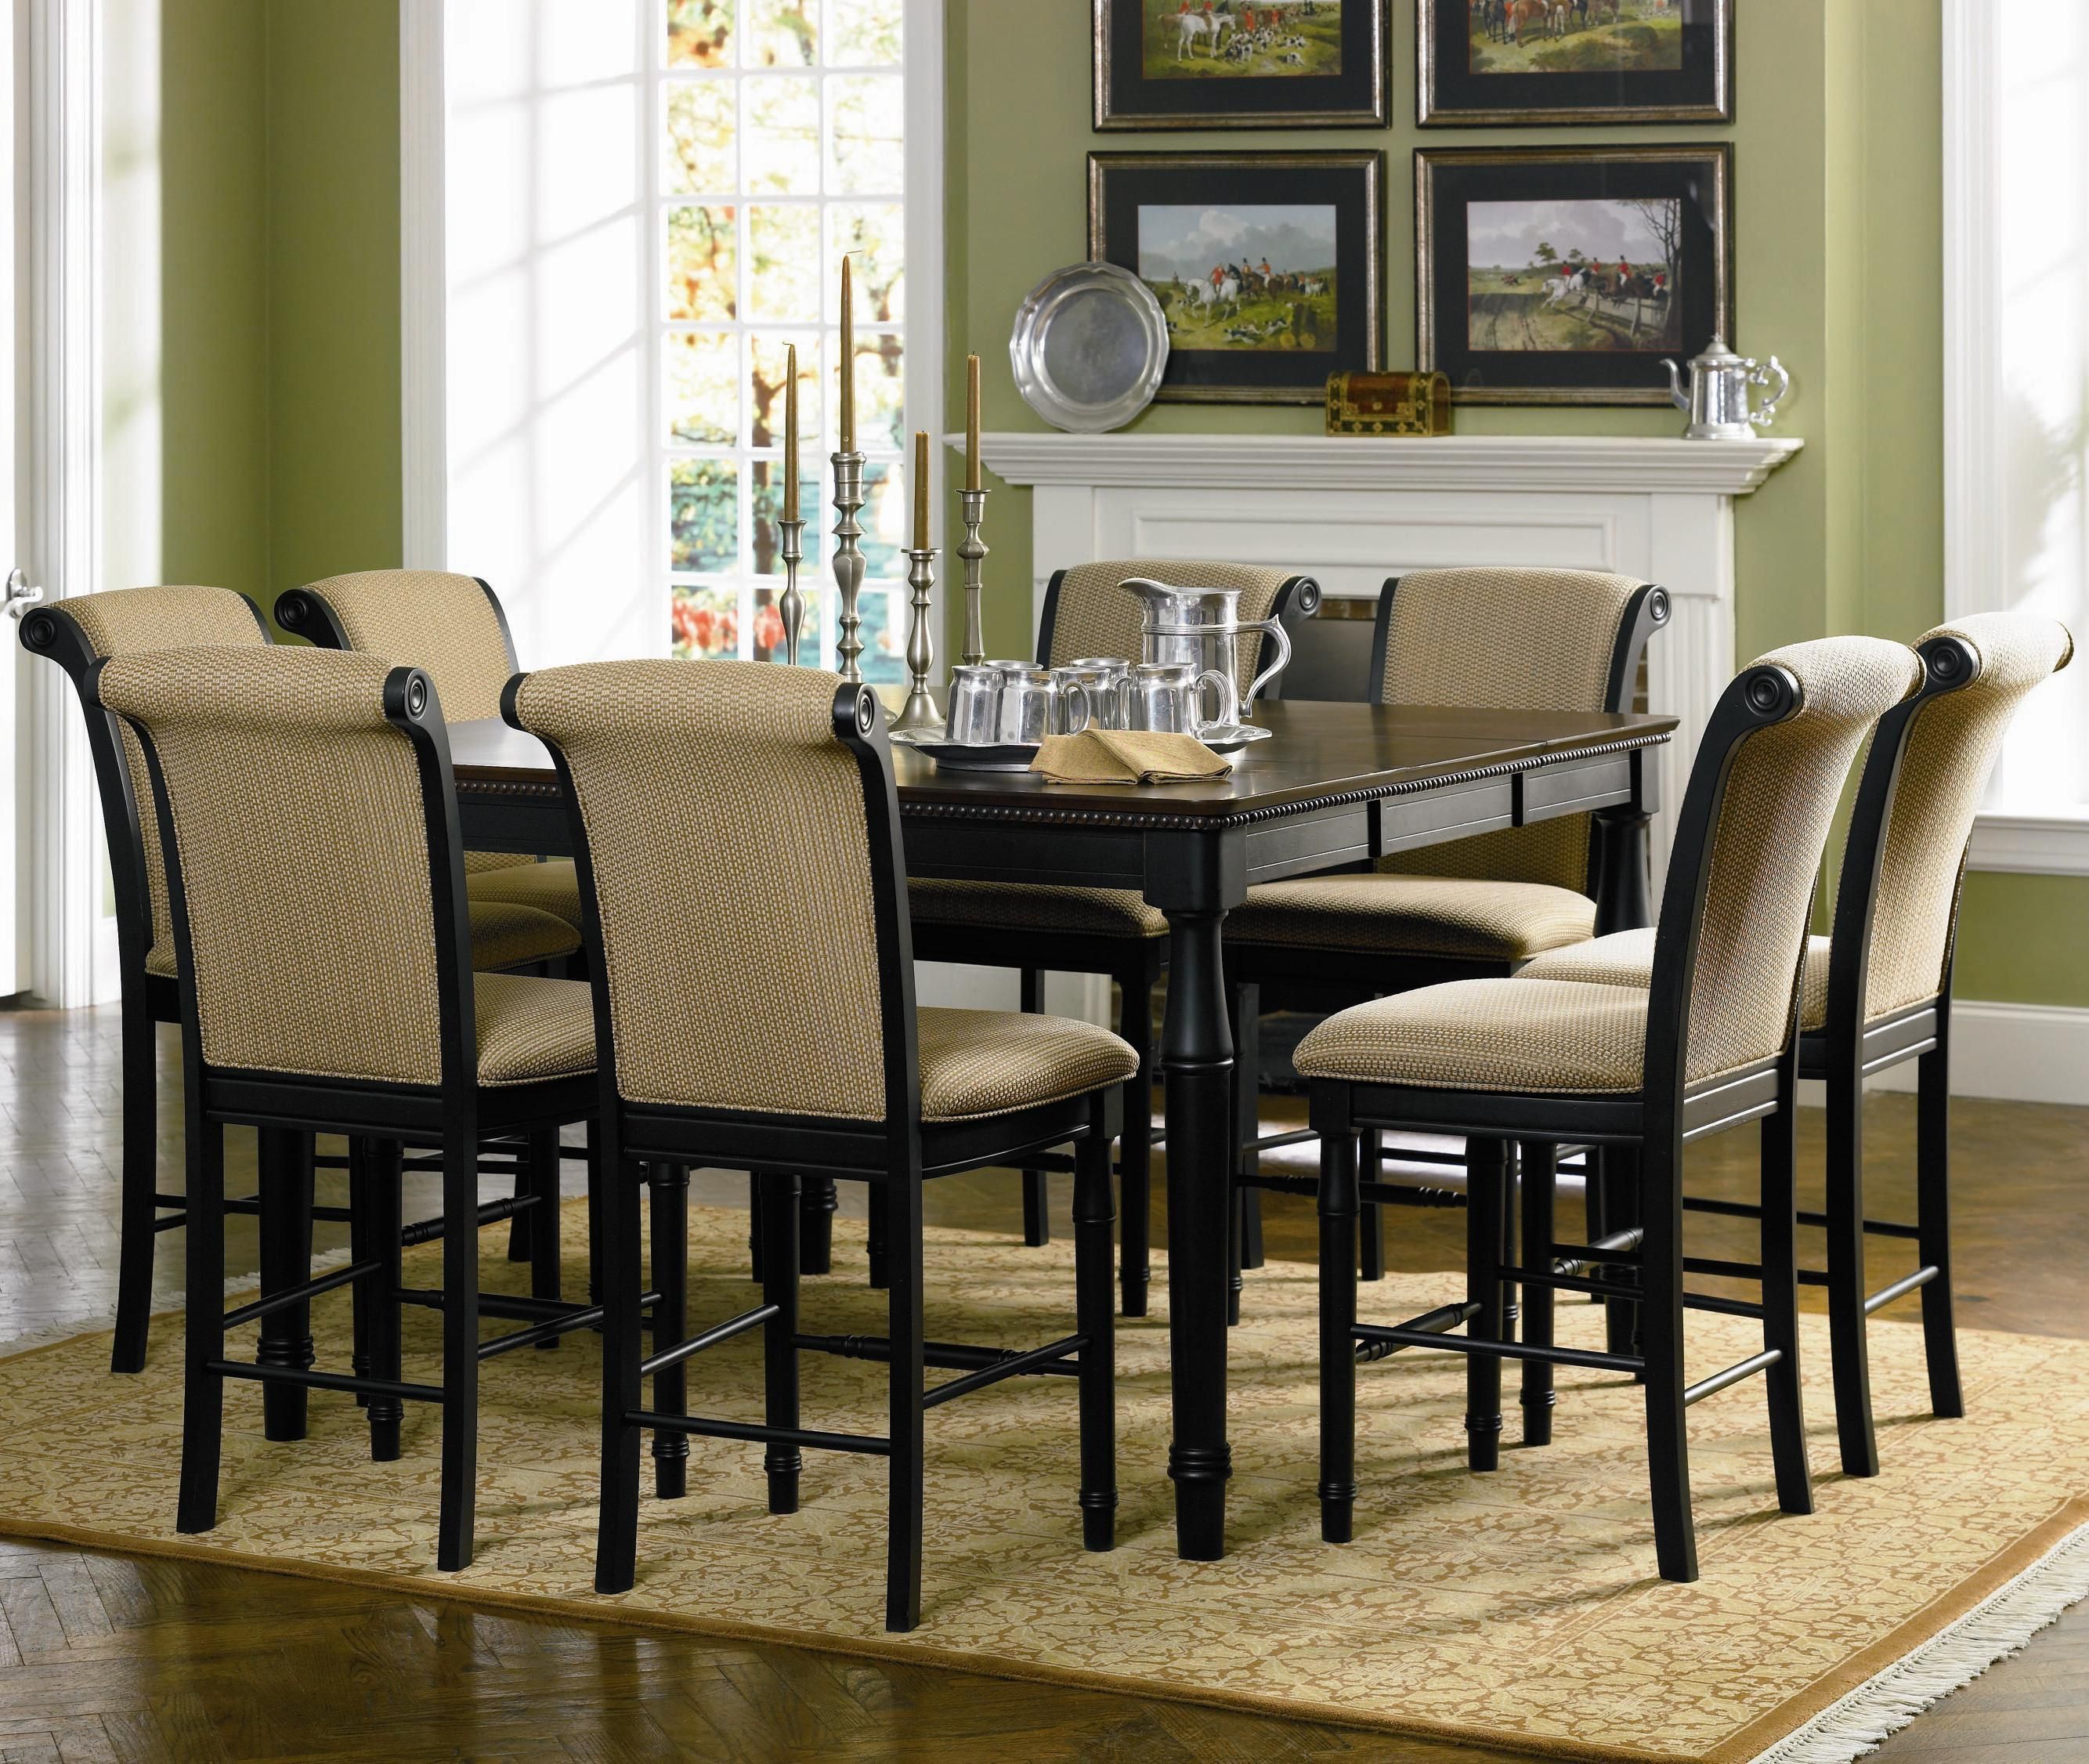 Bar Height Kitchen Table Set Cabrillo 9 Piece Counter Height Dining Set By Coaster Dining